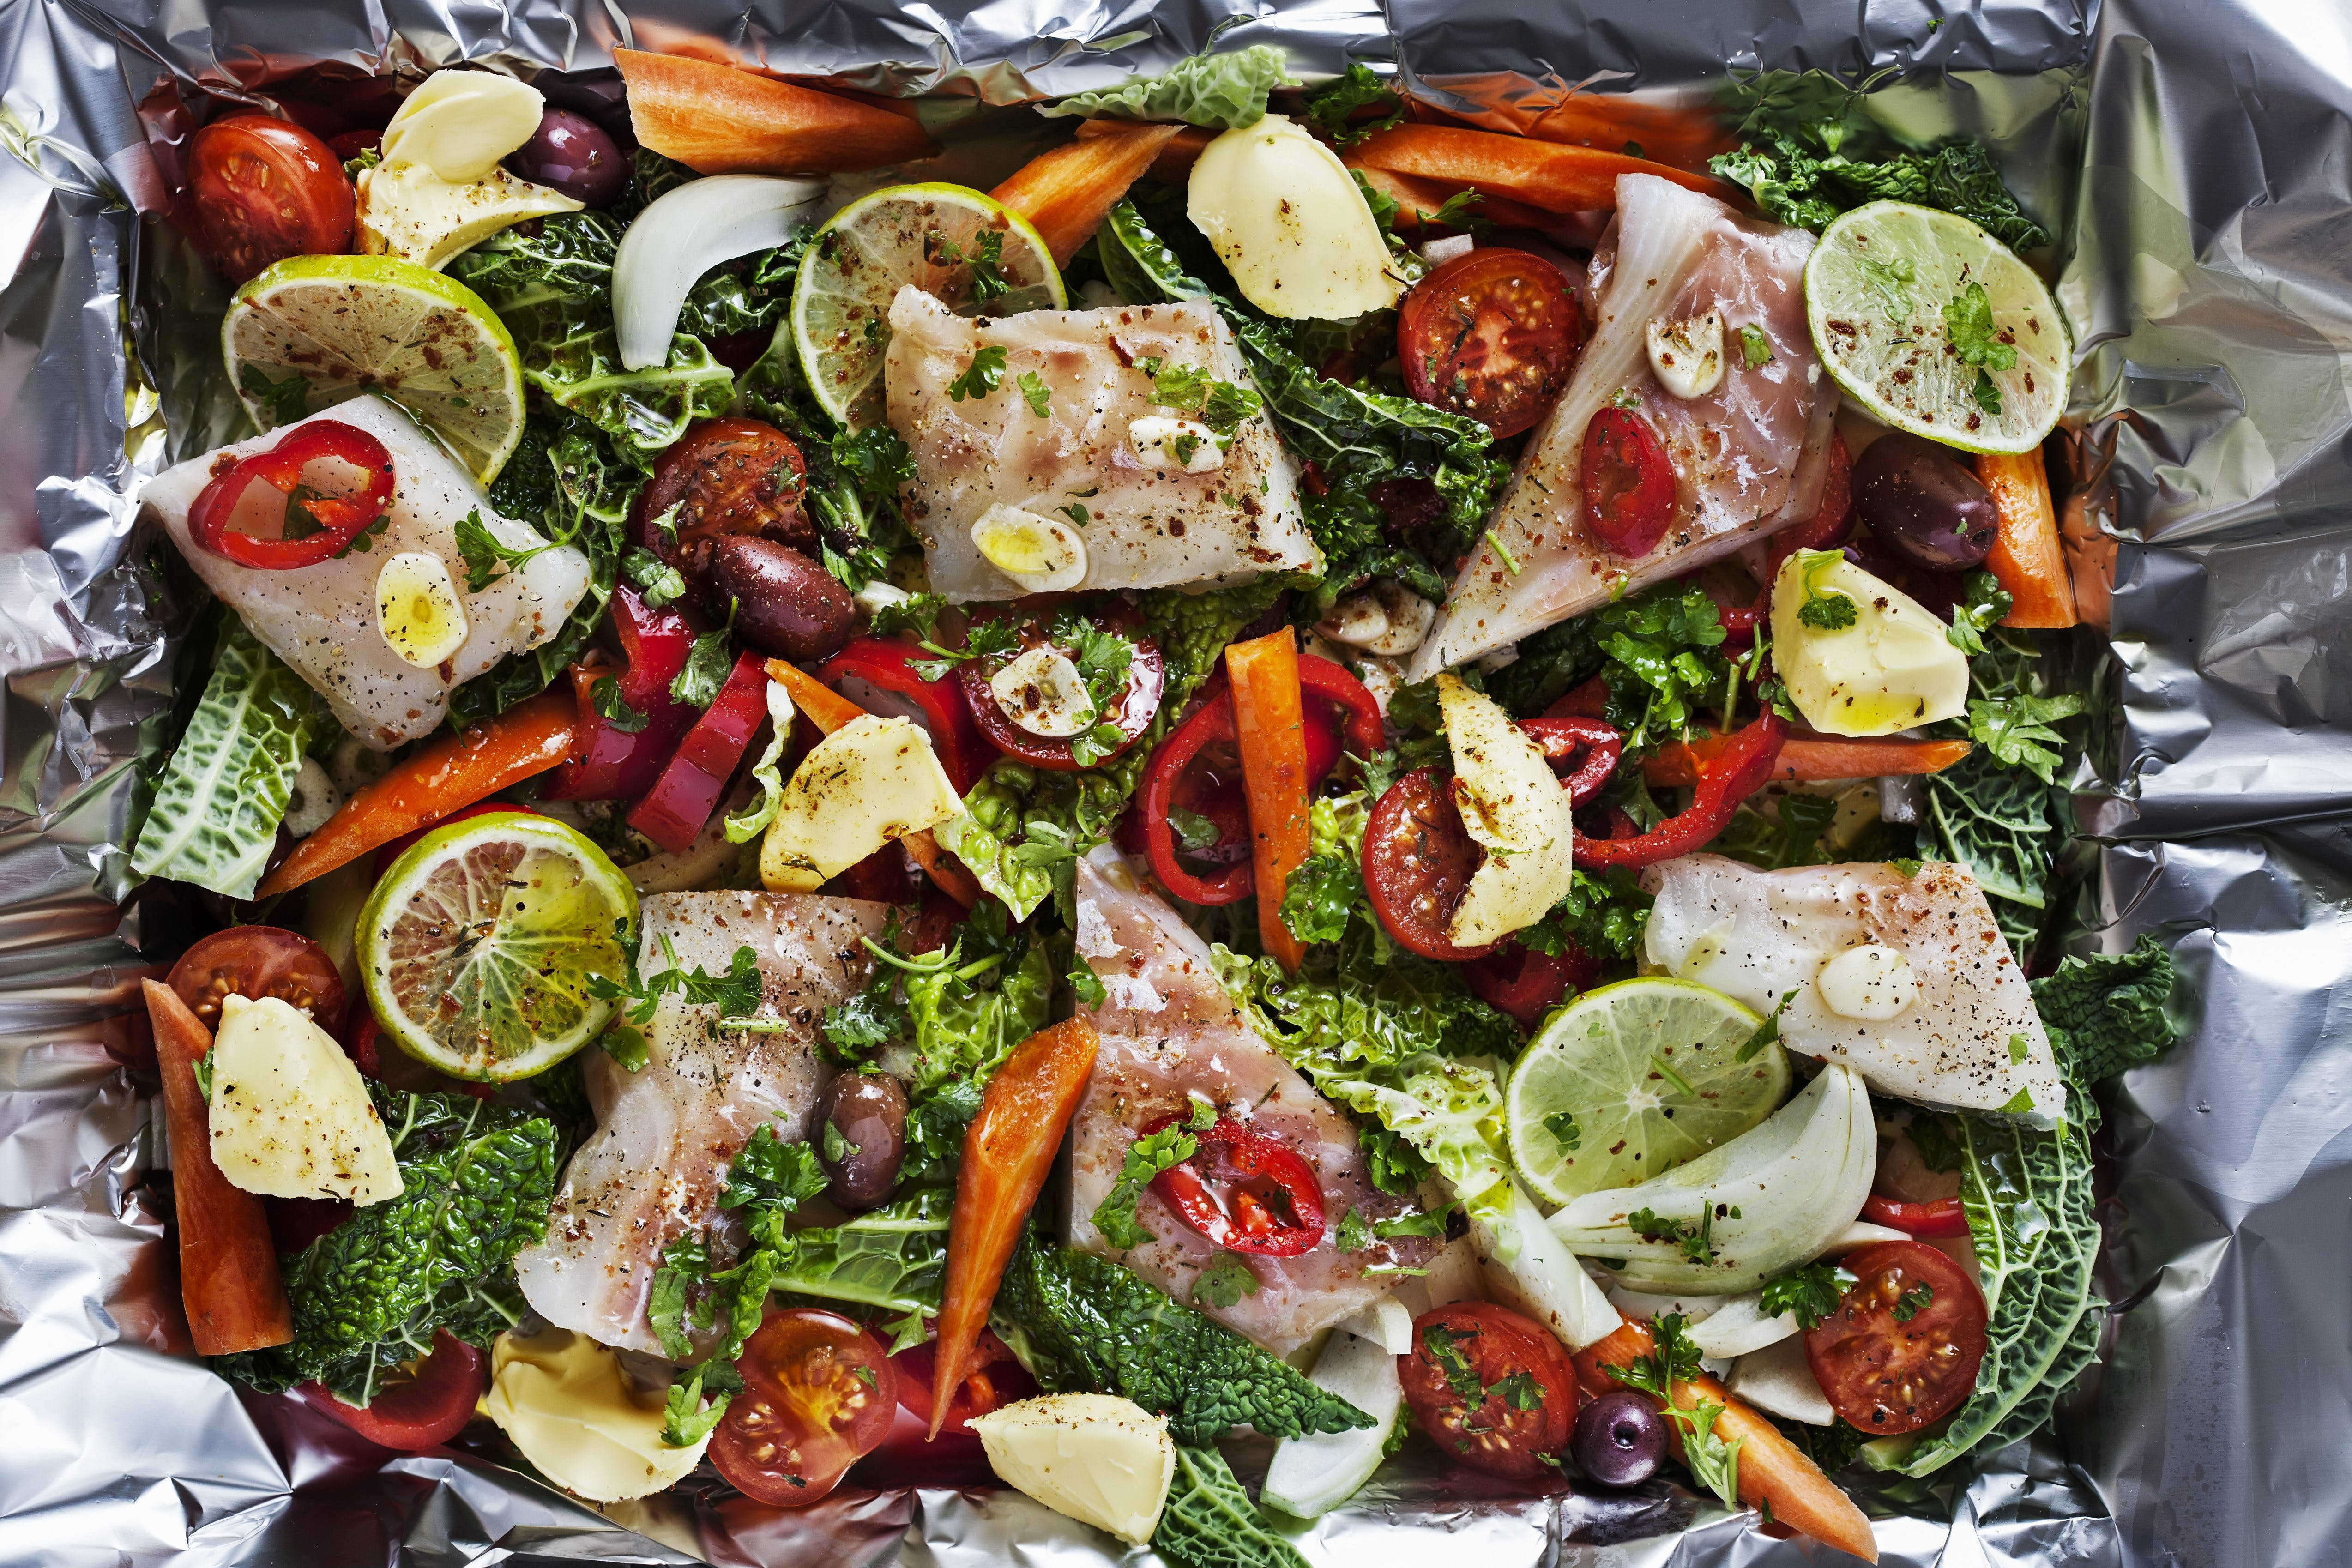 Another New LCHF Recipe: Fish with Vegetables Baked in Foil